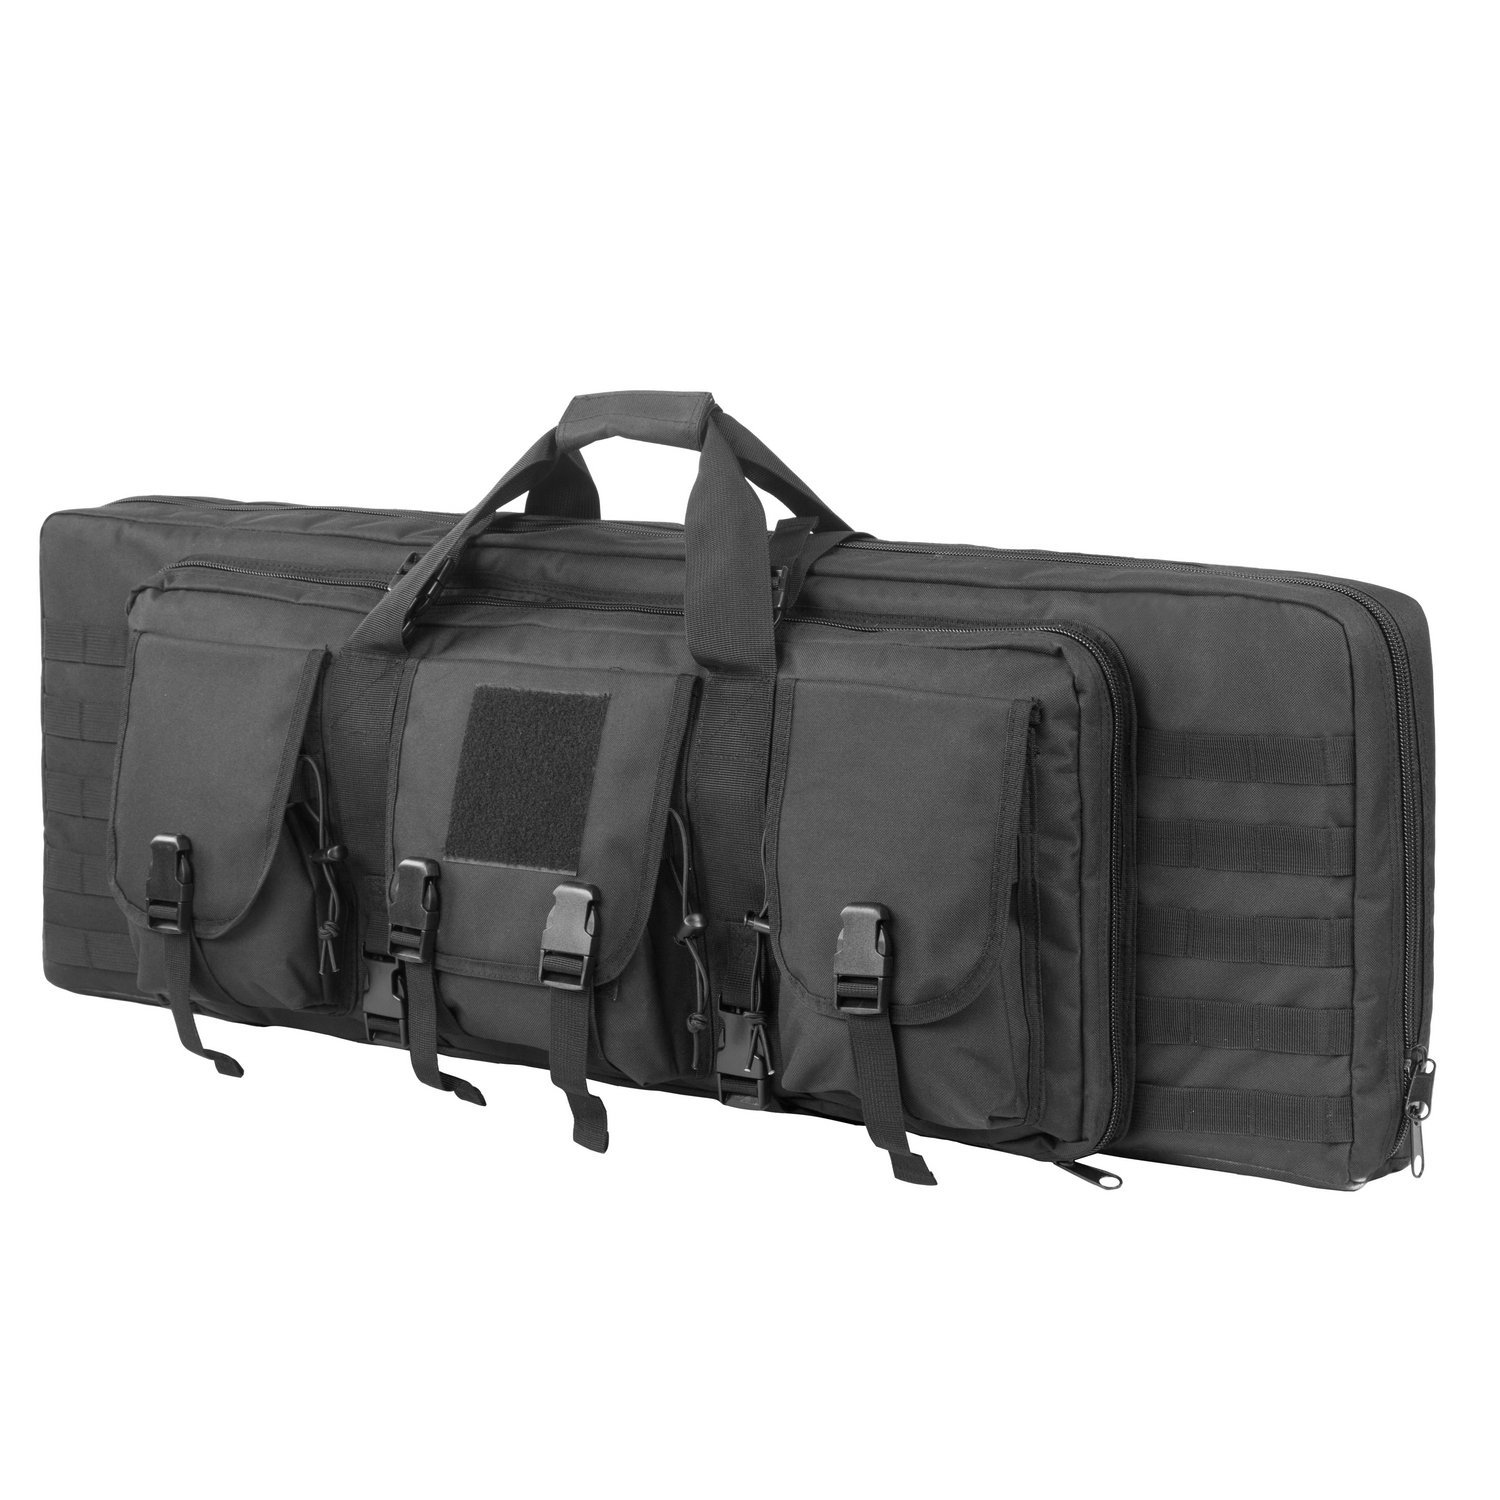 ARMYCAMOUSA 38 Inch Double Rifle Bag Outdoor Tactical Carbine Cases Water dust Resistant Long Gun Case Bag for Hunting Shooting Range Sports Storage and Transport by ARMYCAMOUSA